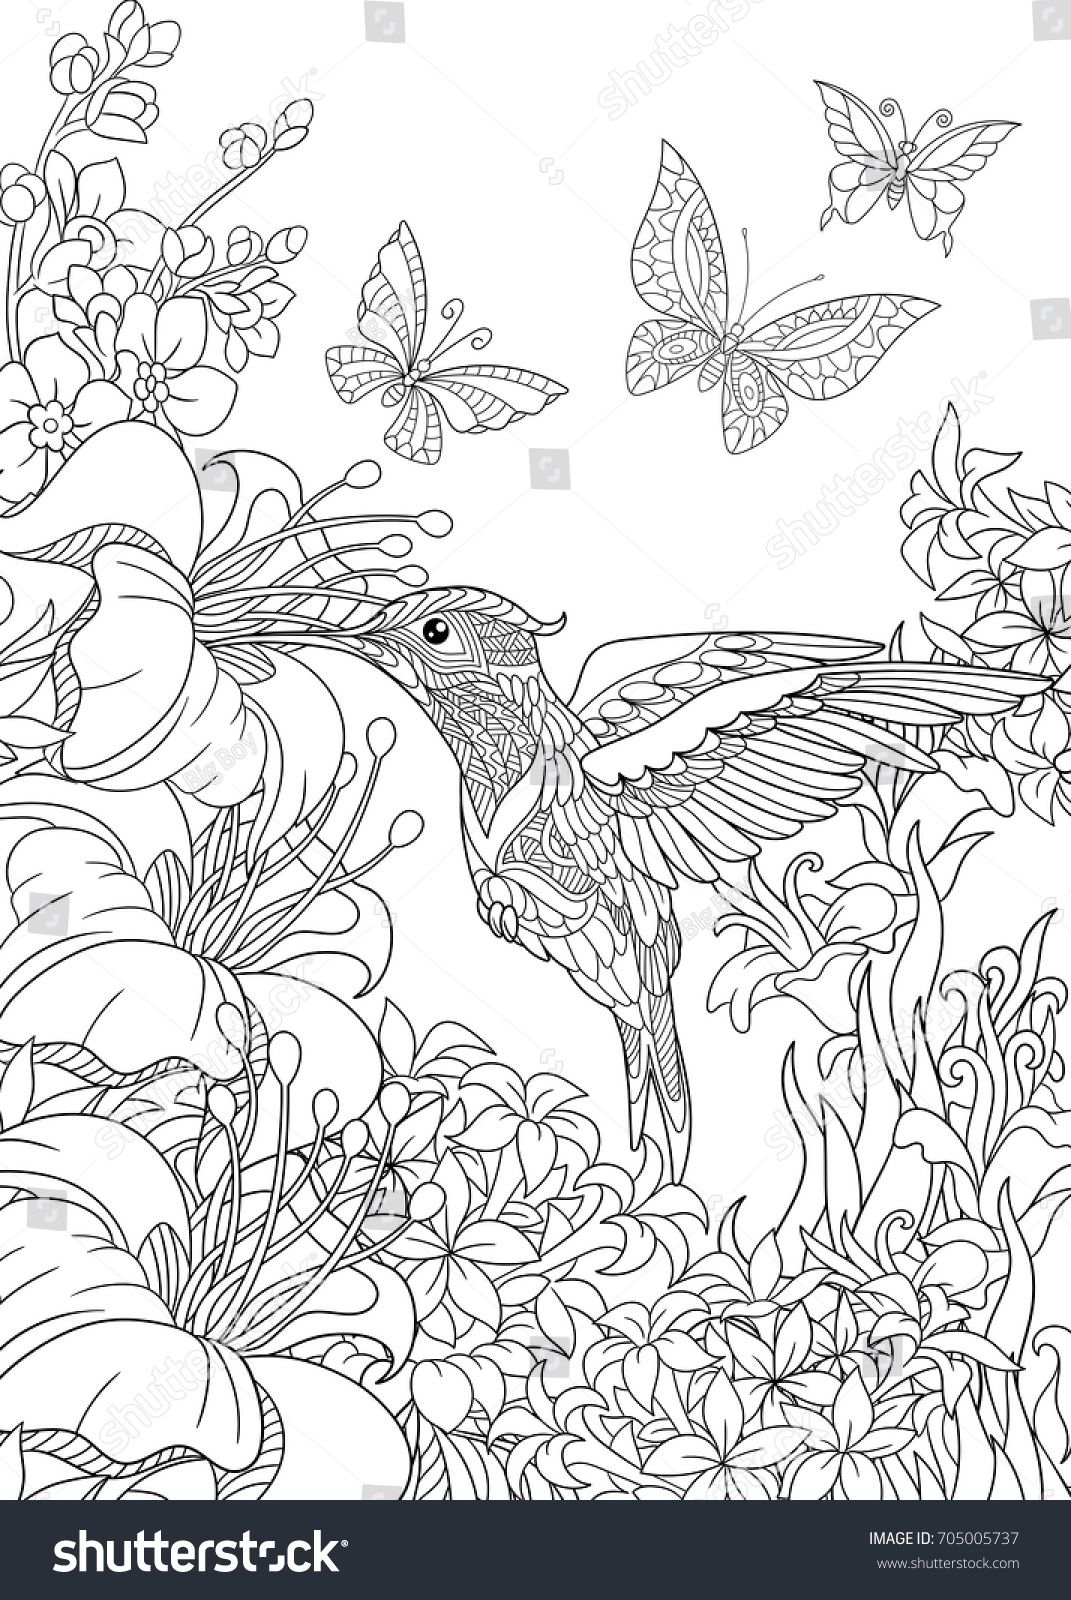 Pin By Brittney Autrey On Zentangle Art Animal Coloring Pages Bird Coloring Pages Detailed Coloring Pages